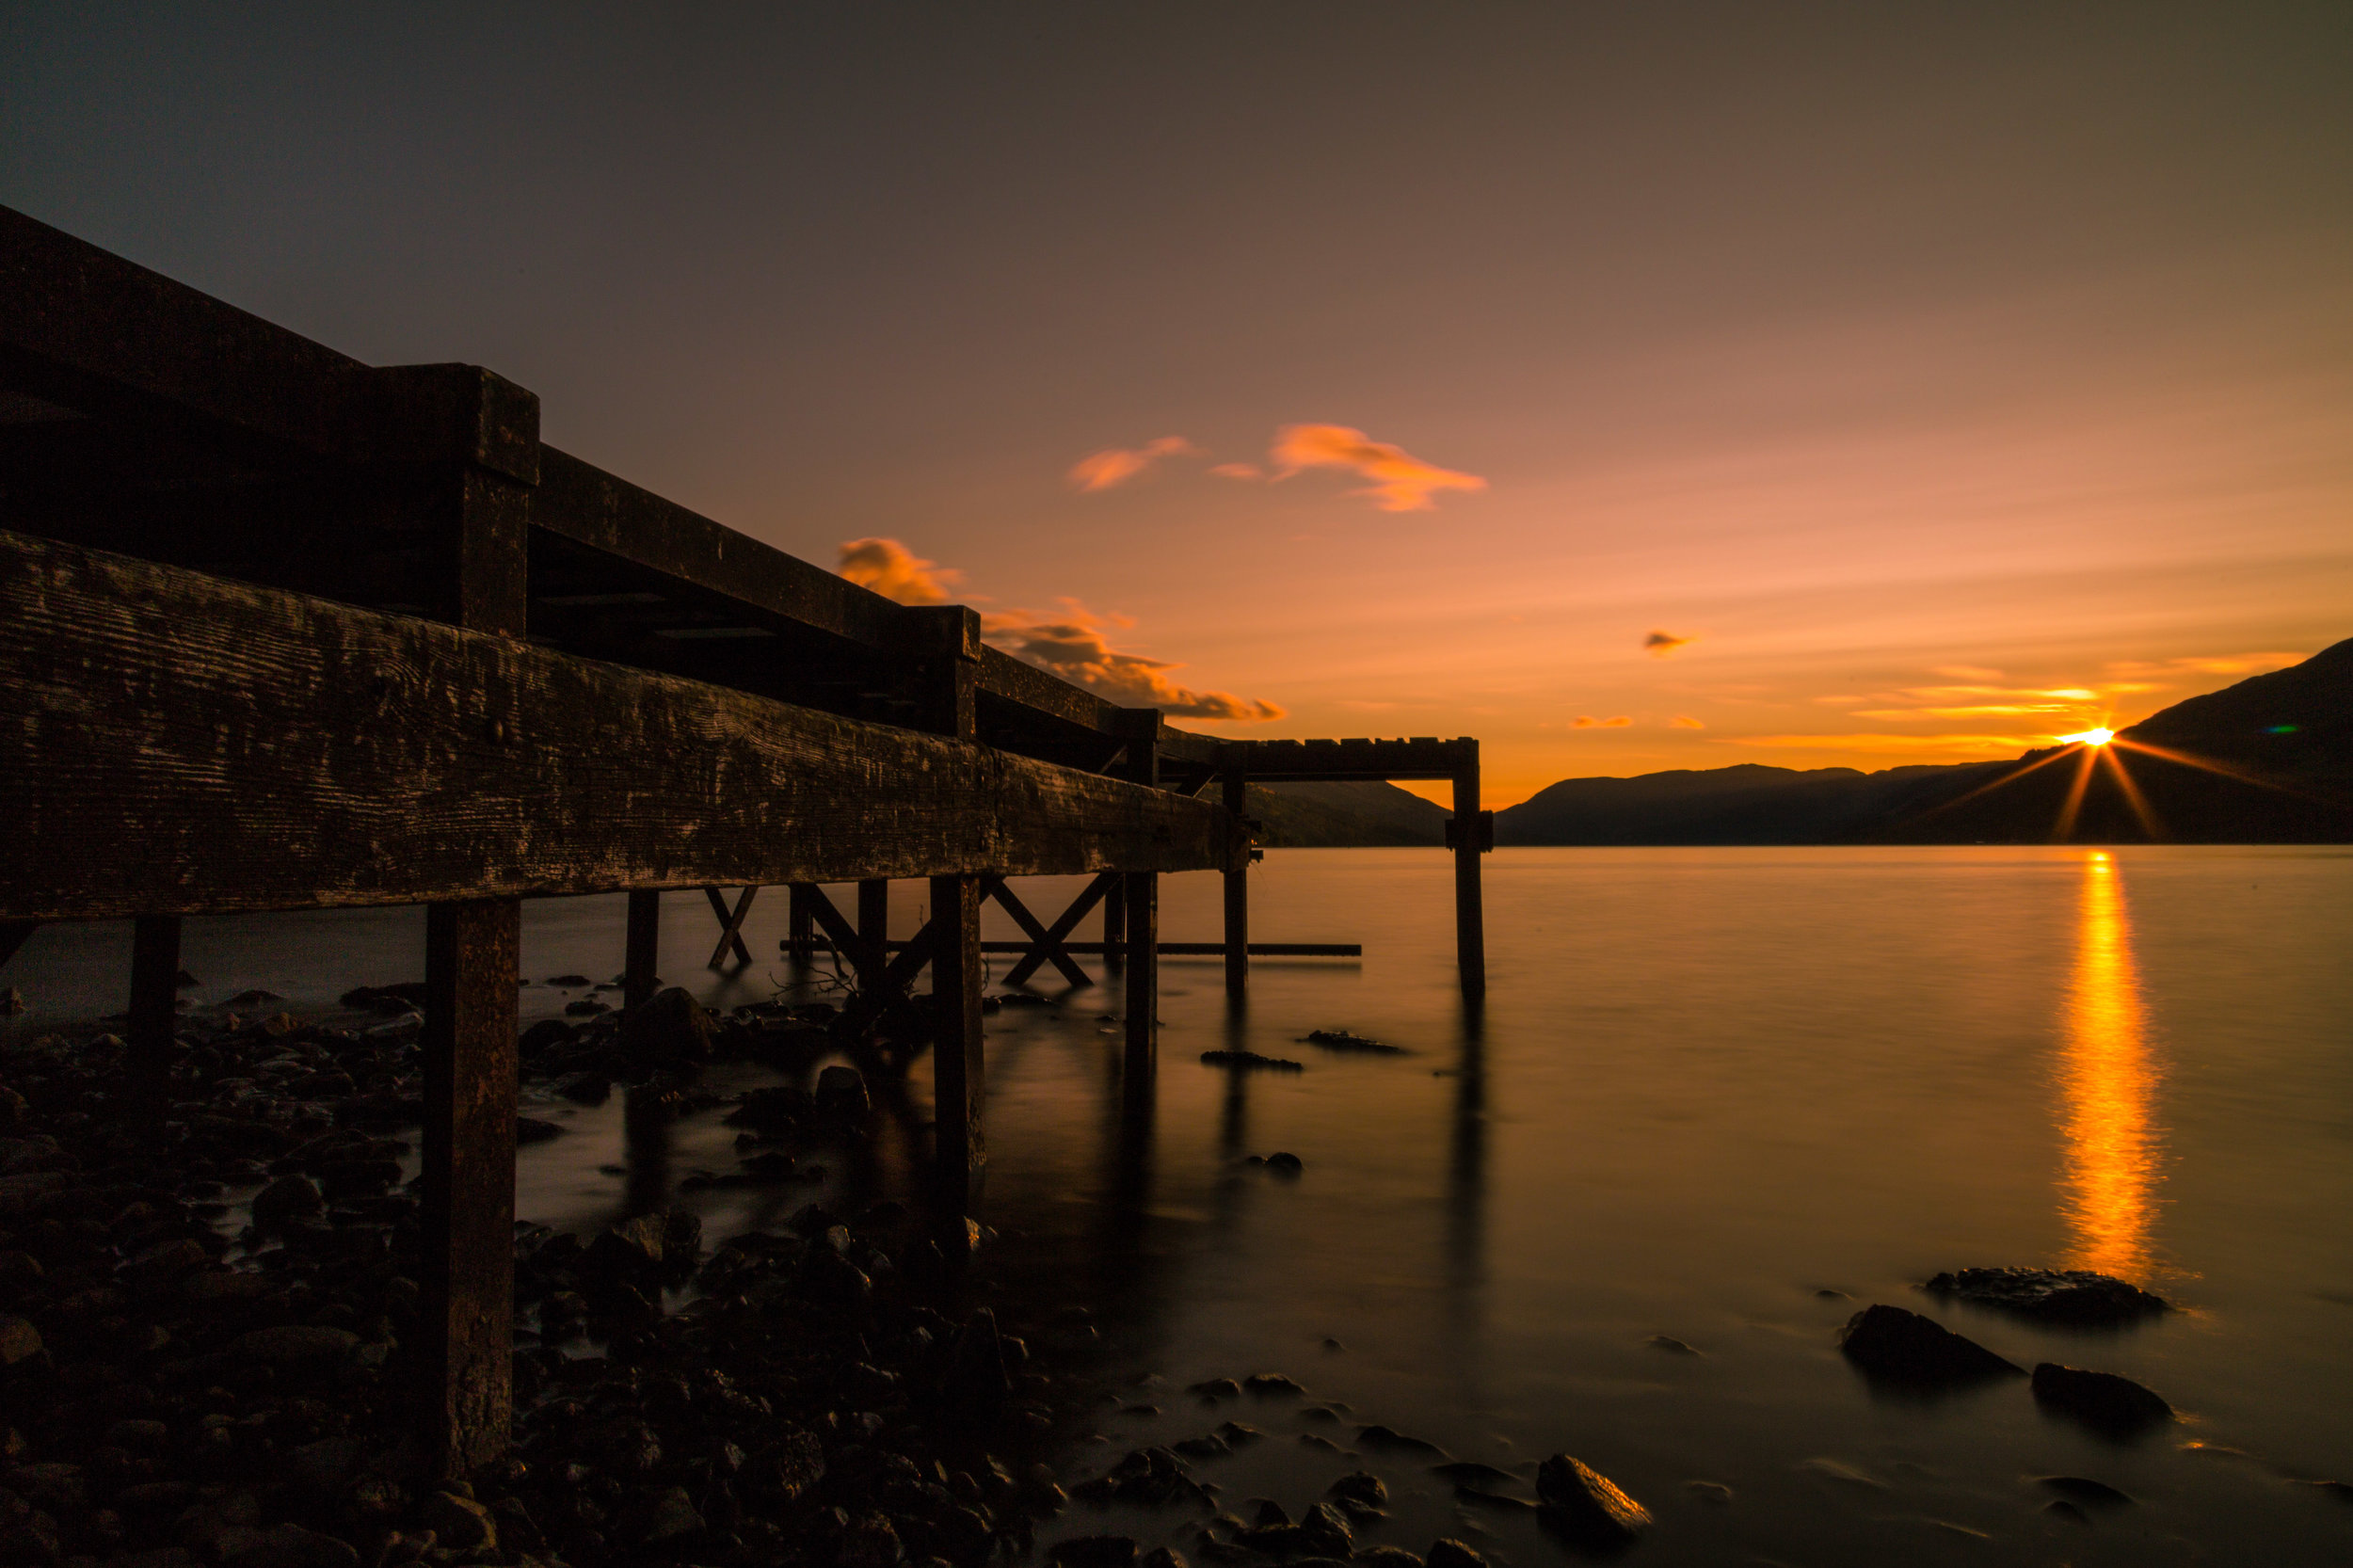 The Jetty at Loch Earn